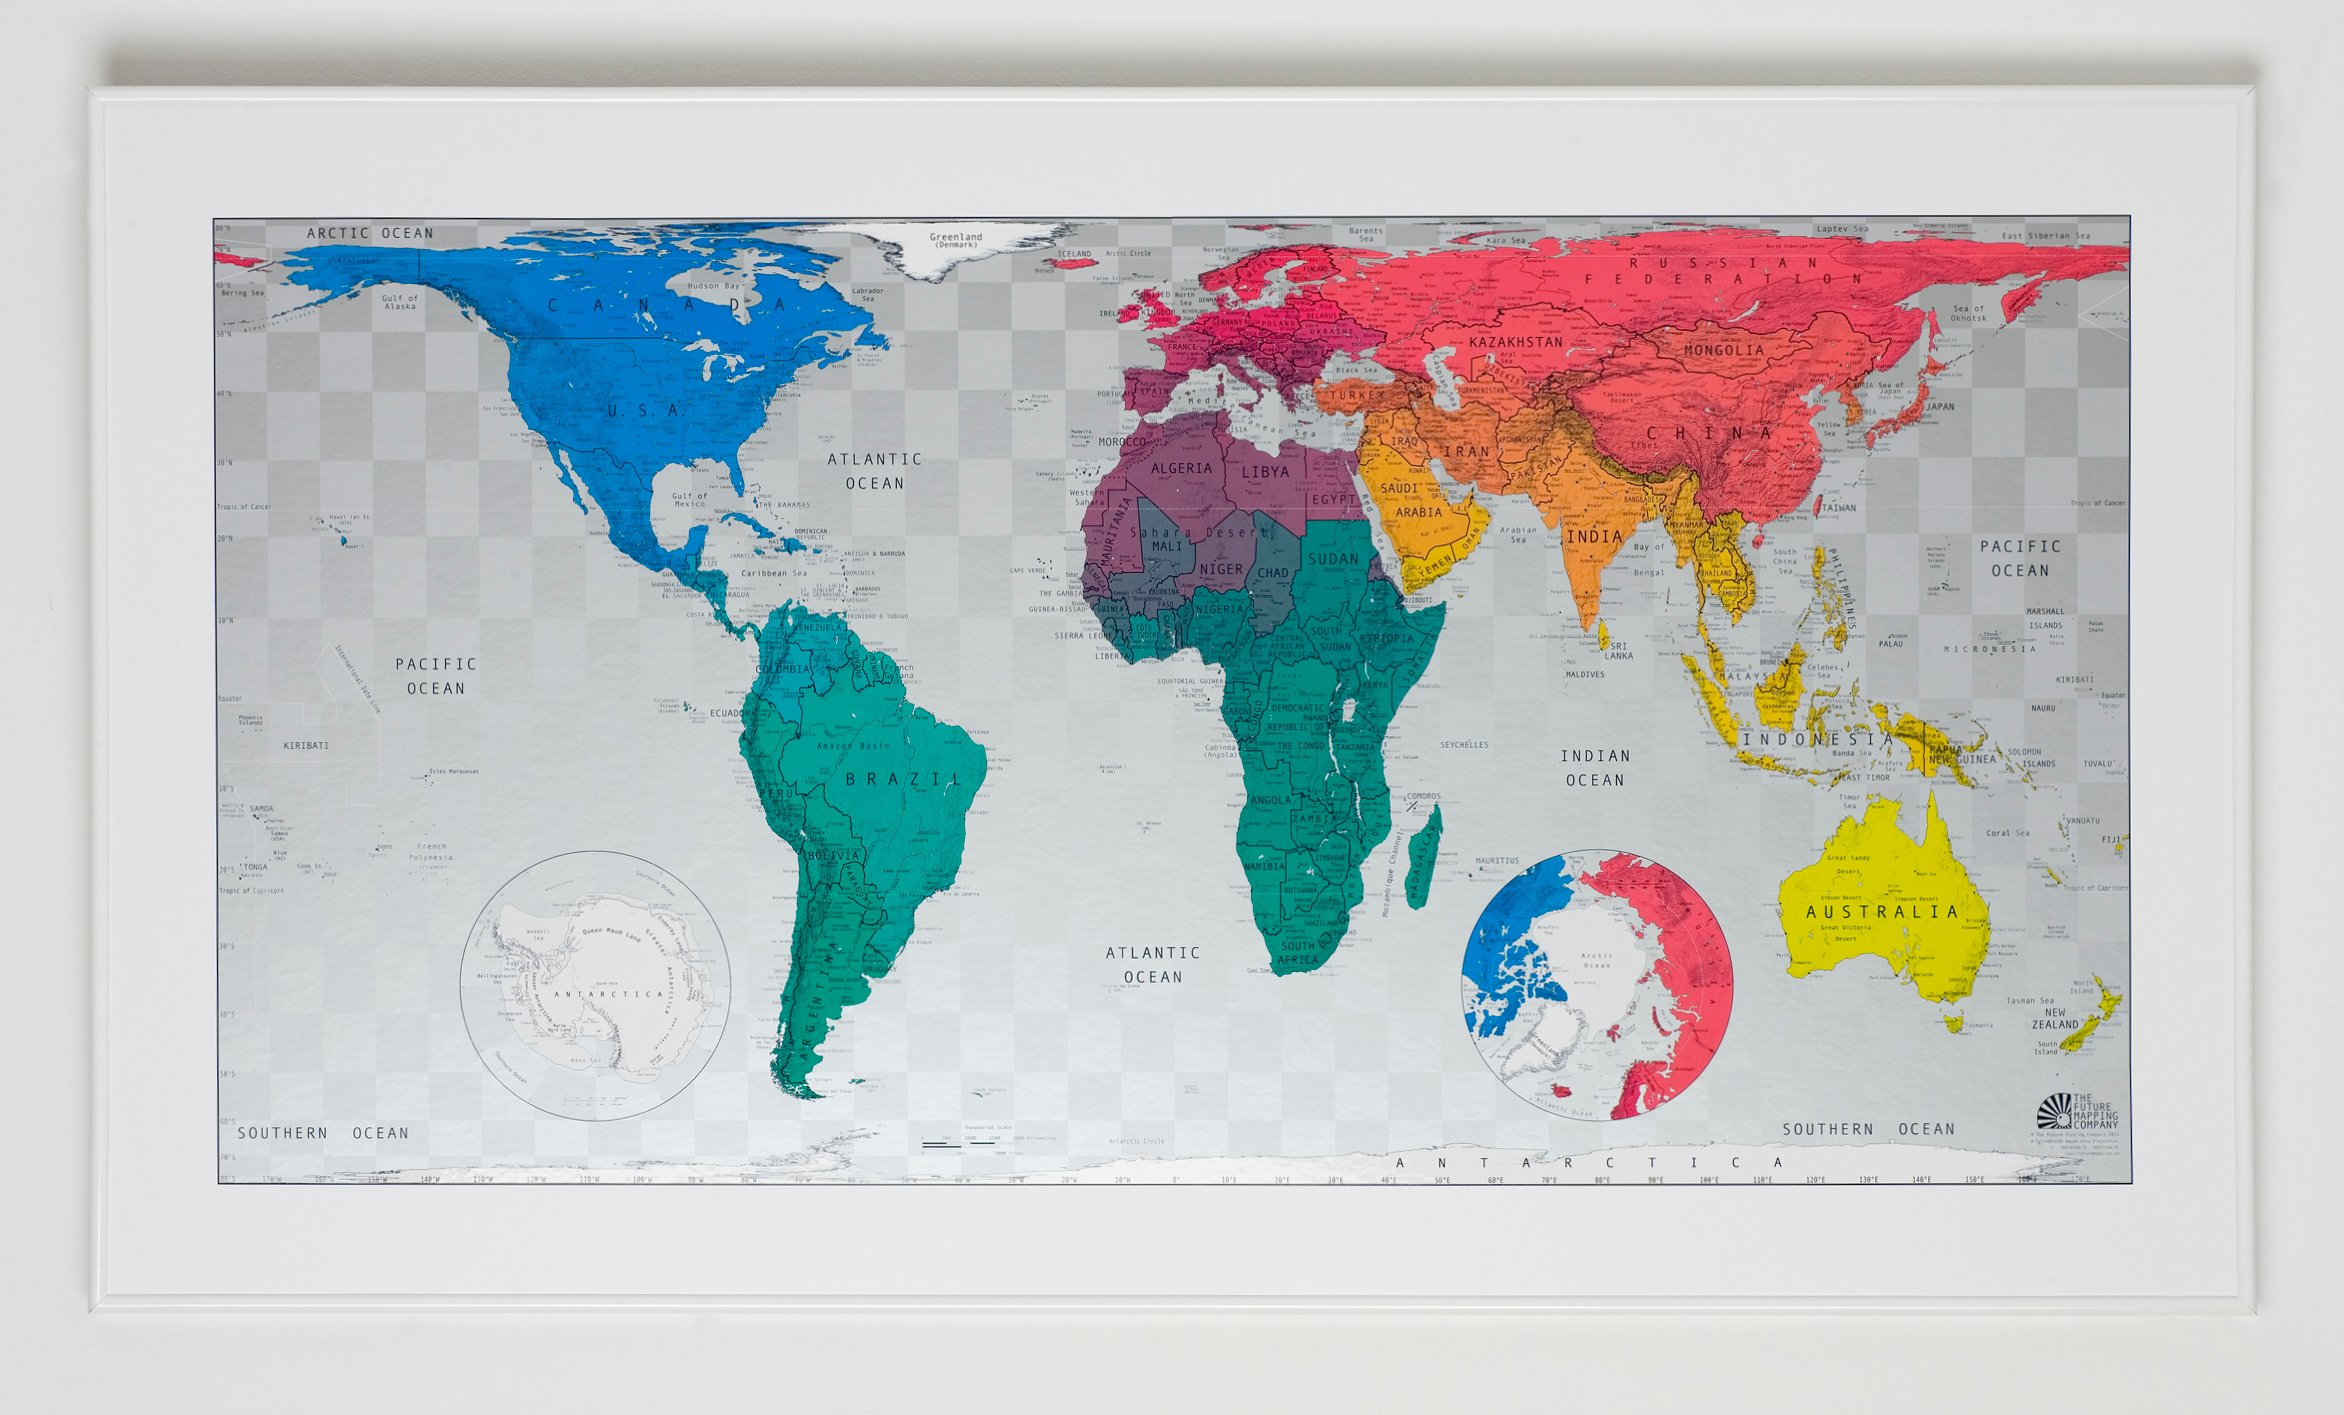 Magnetic world maps afp cv world magnetic map poli classic black wood frame 46x33in34500 gumiabroncs Images